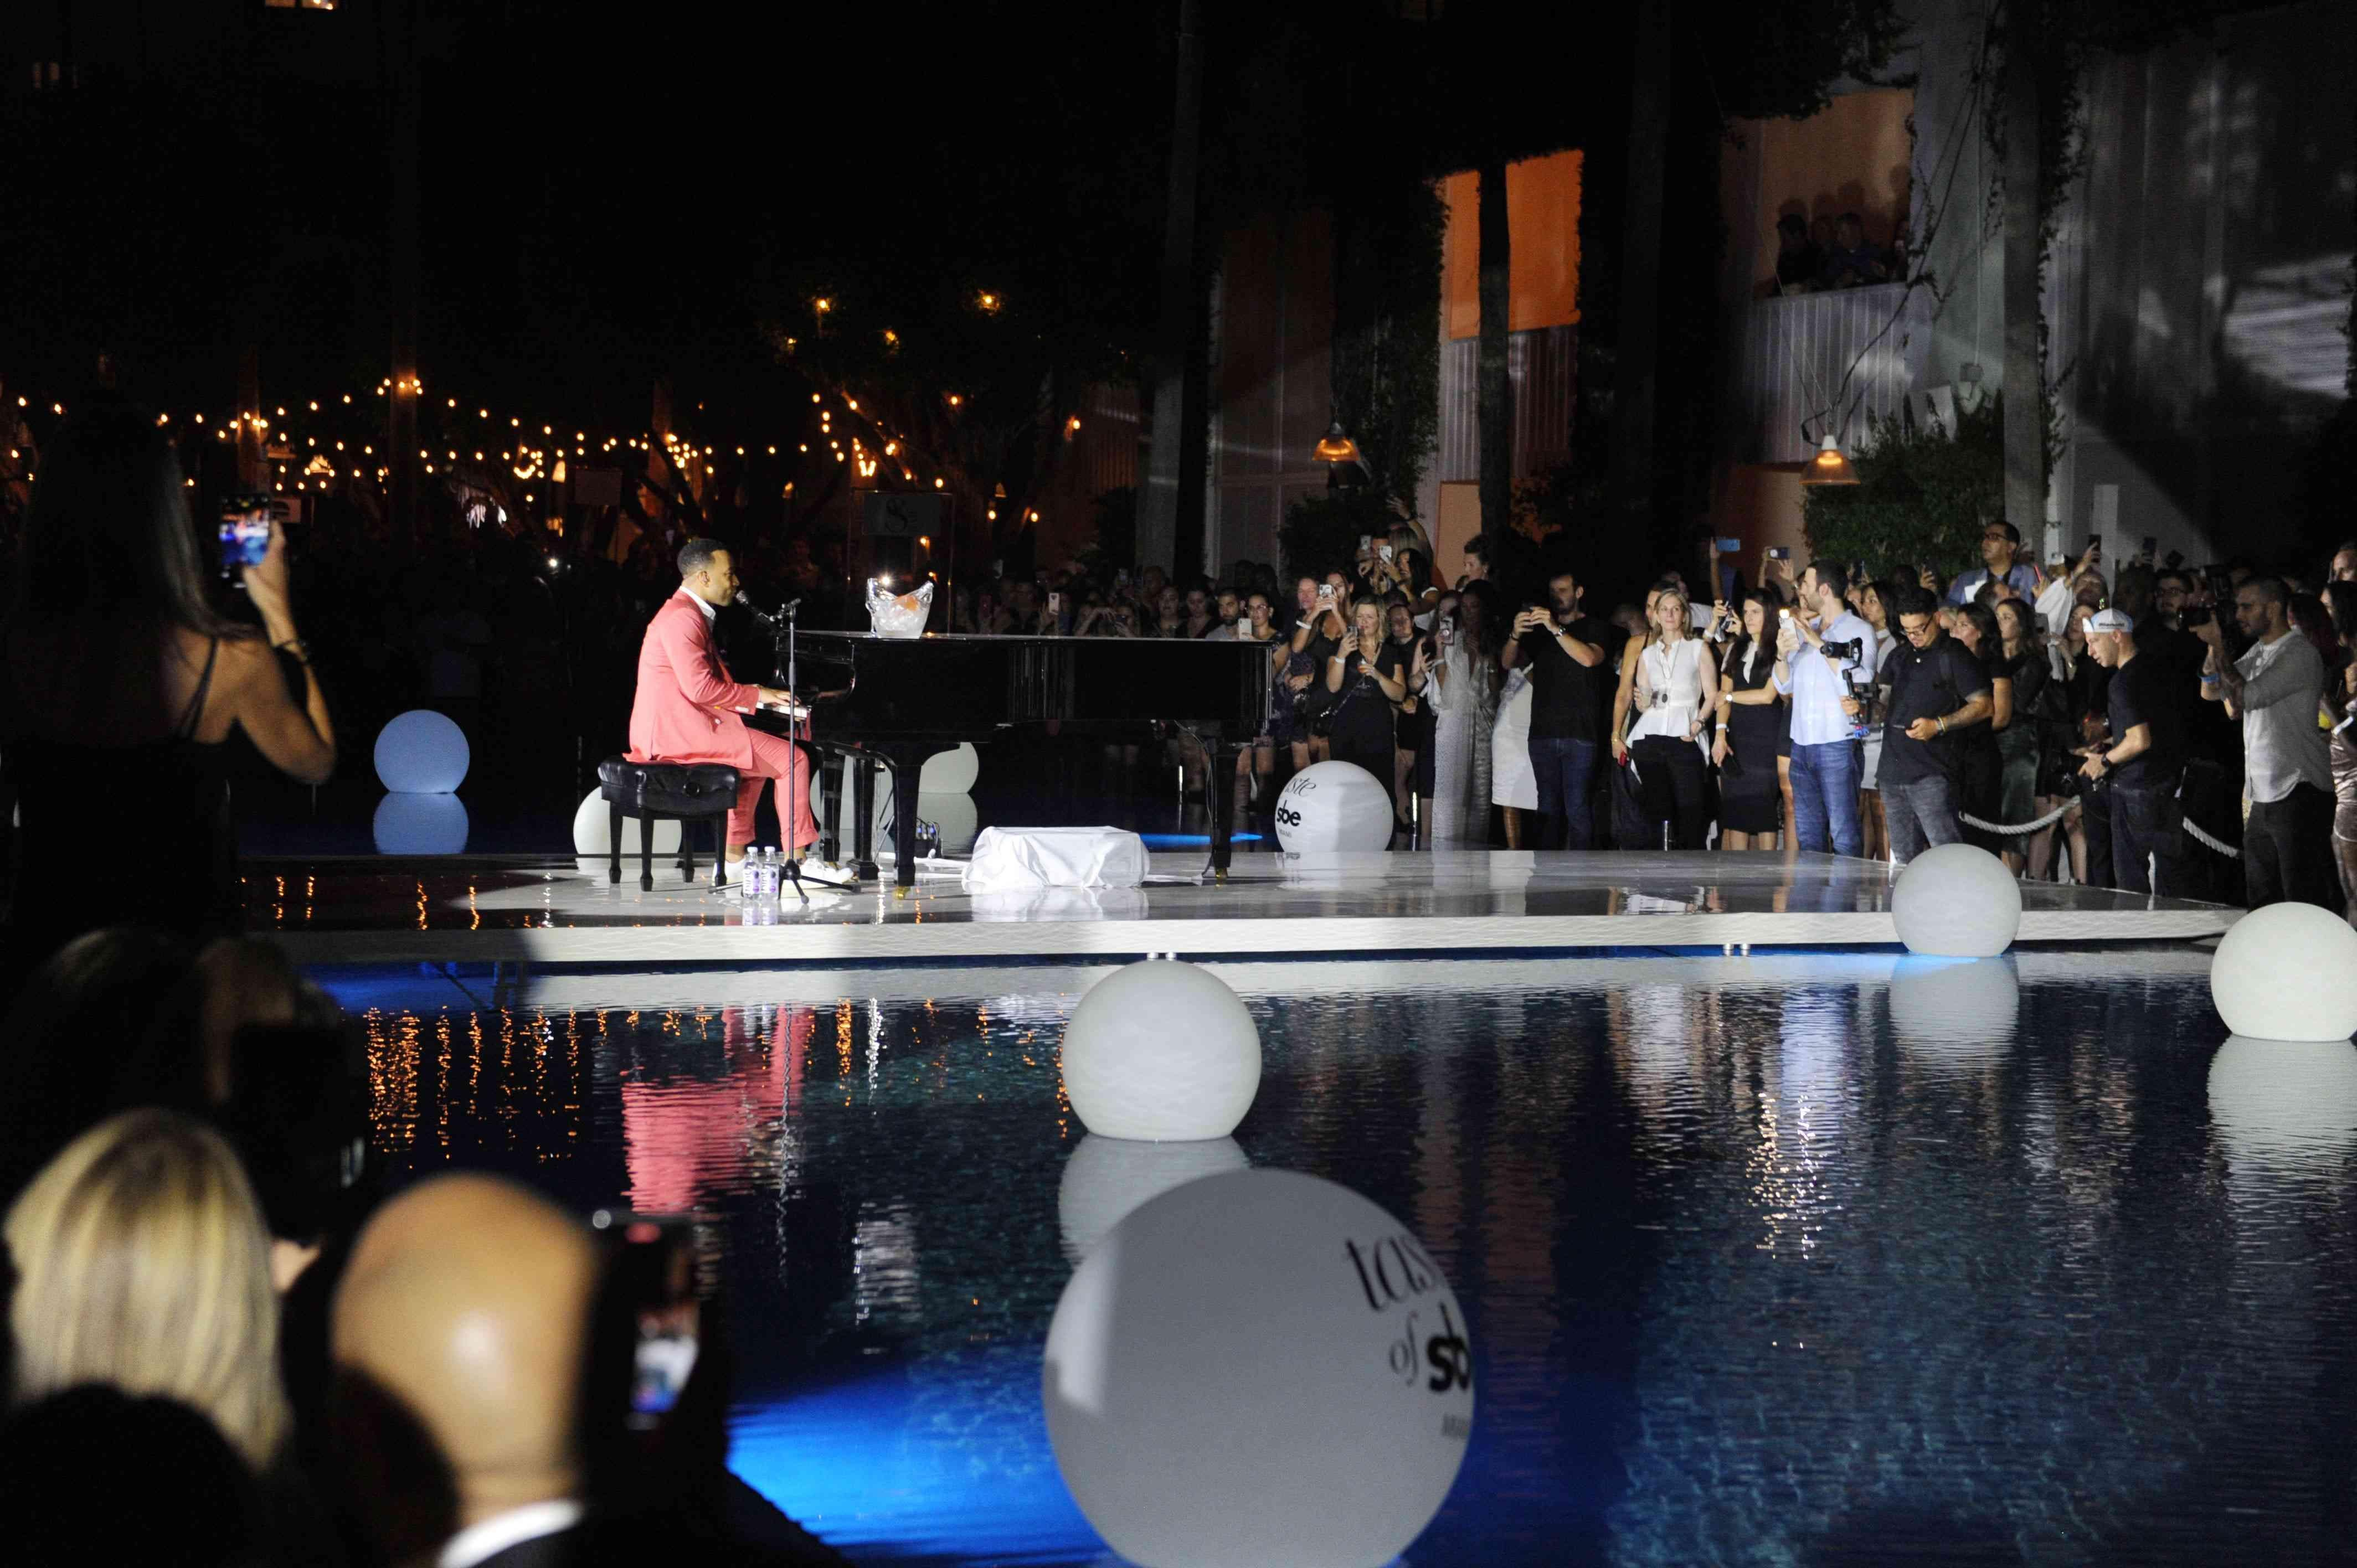 John Legend at a piano by a pool